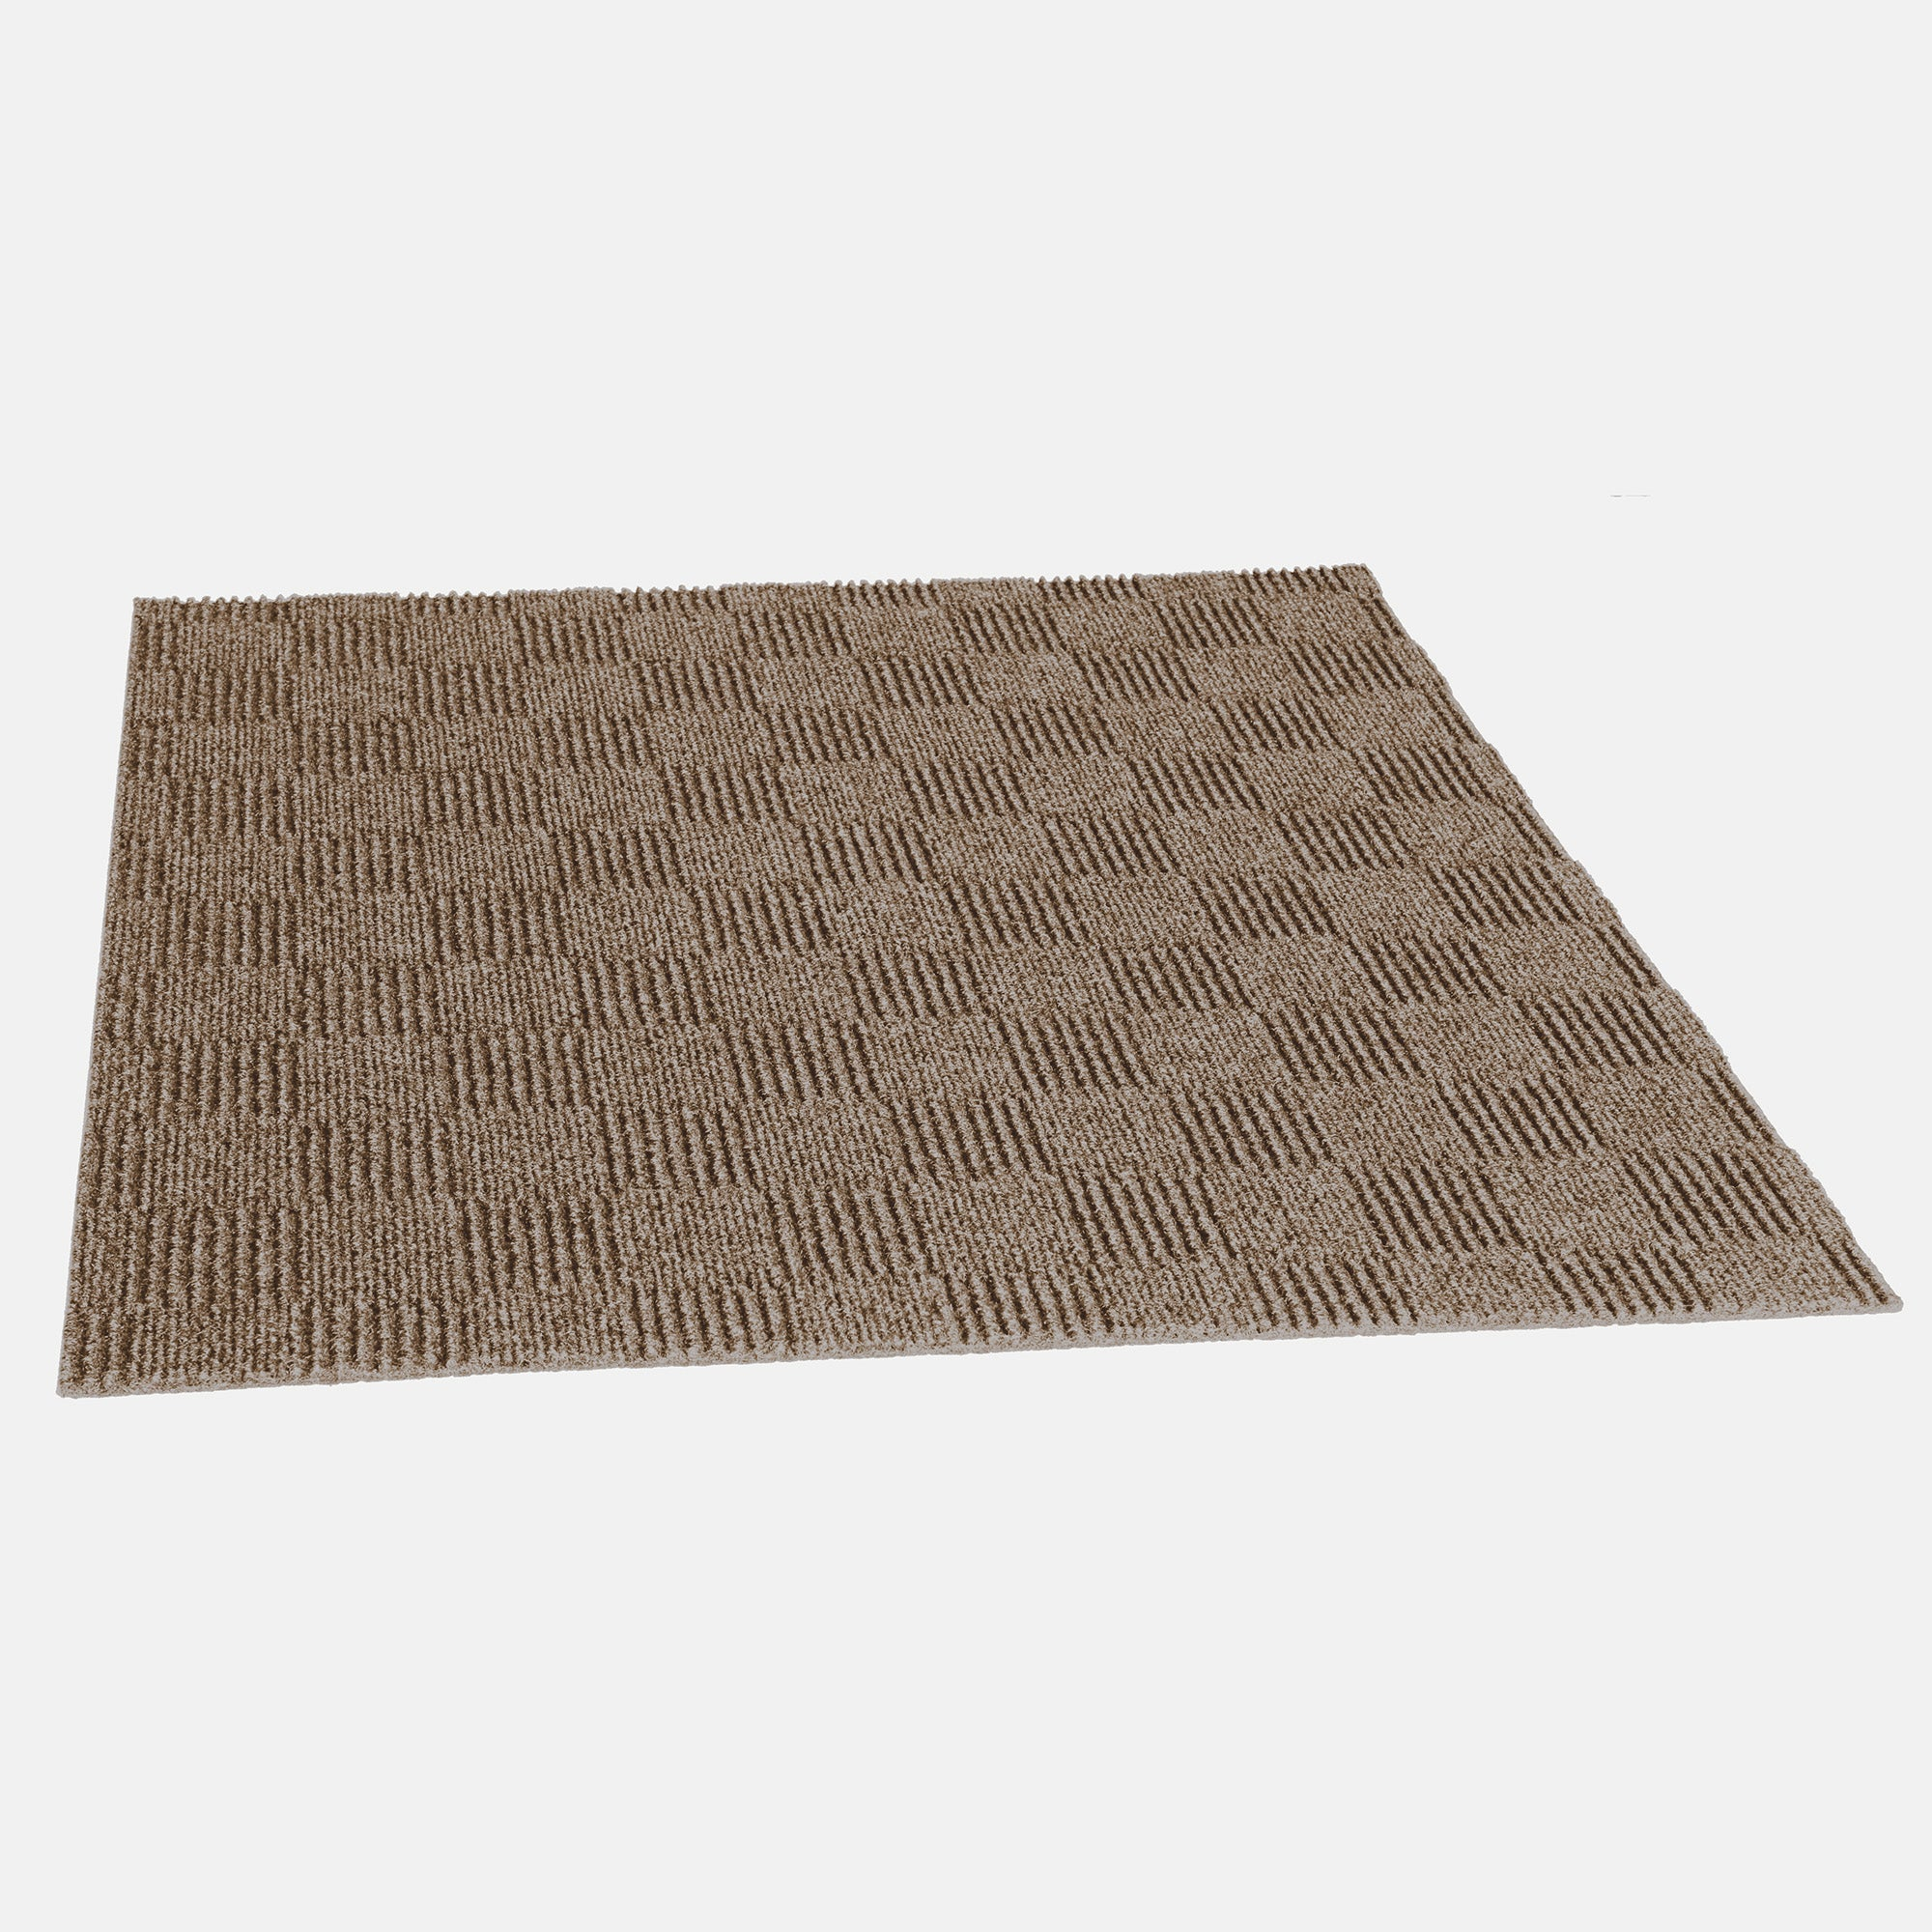 Prism 24'' X 24'' Premium Peel And Stick Carpet Tiles (Oatmeal)